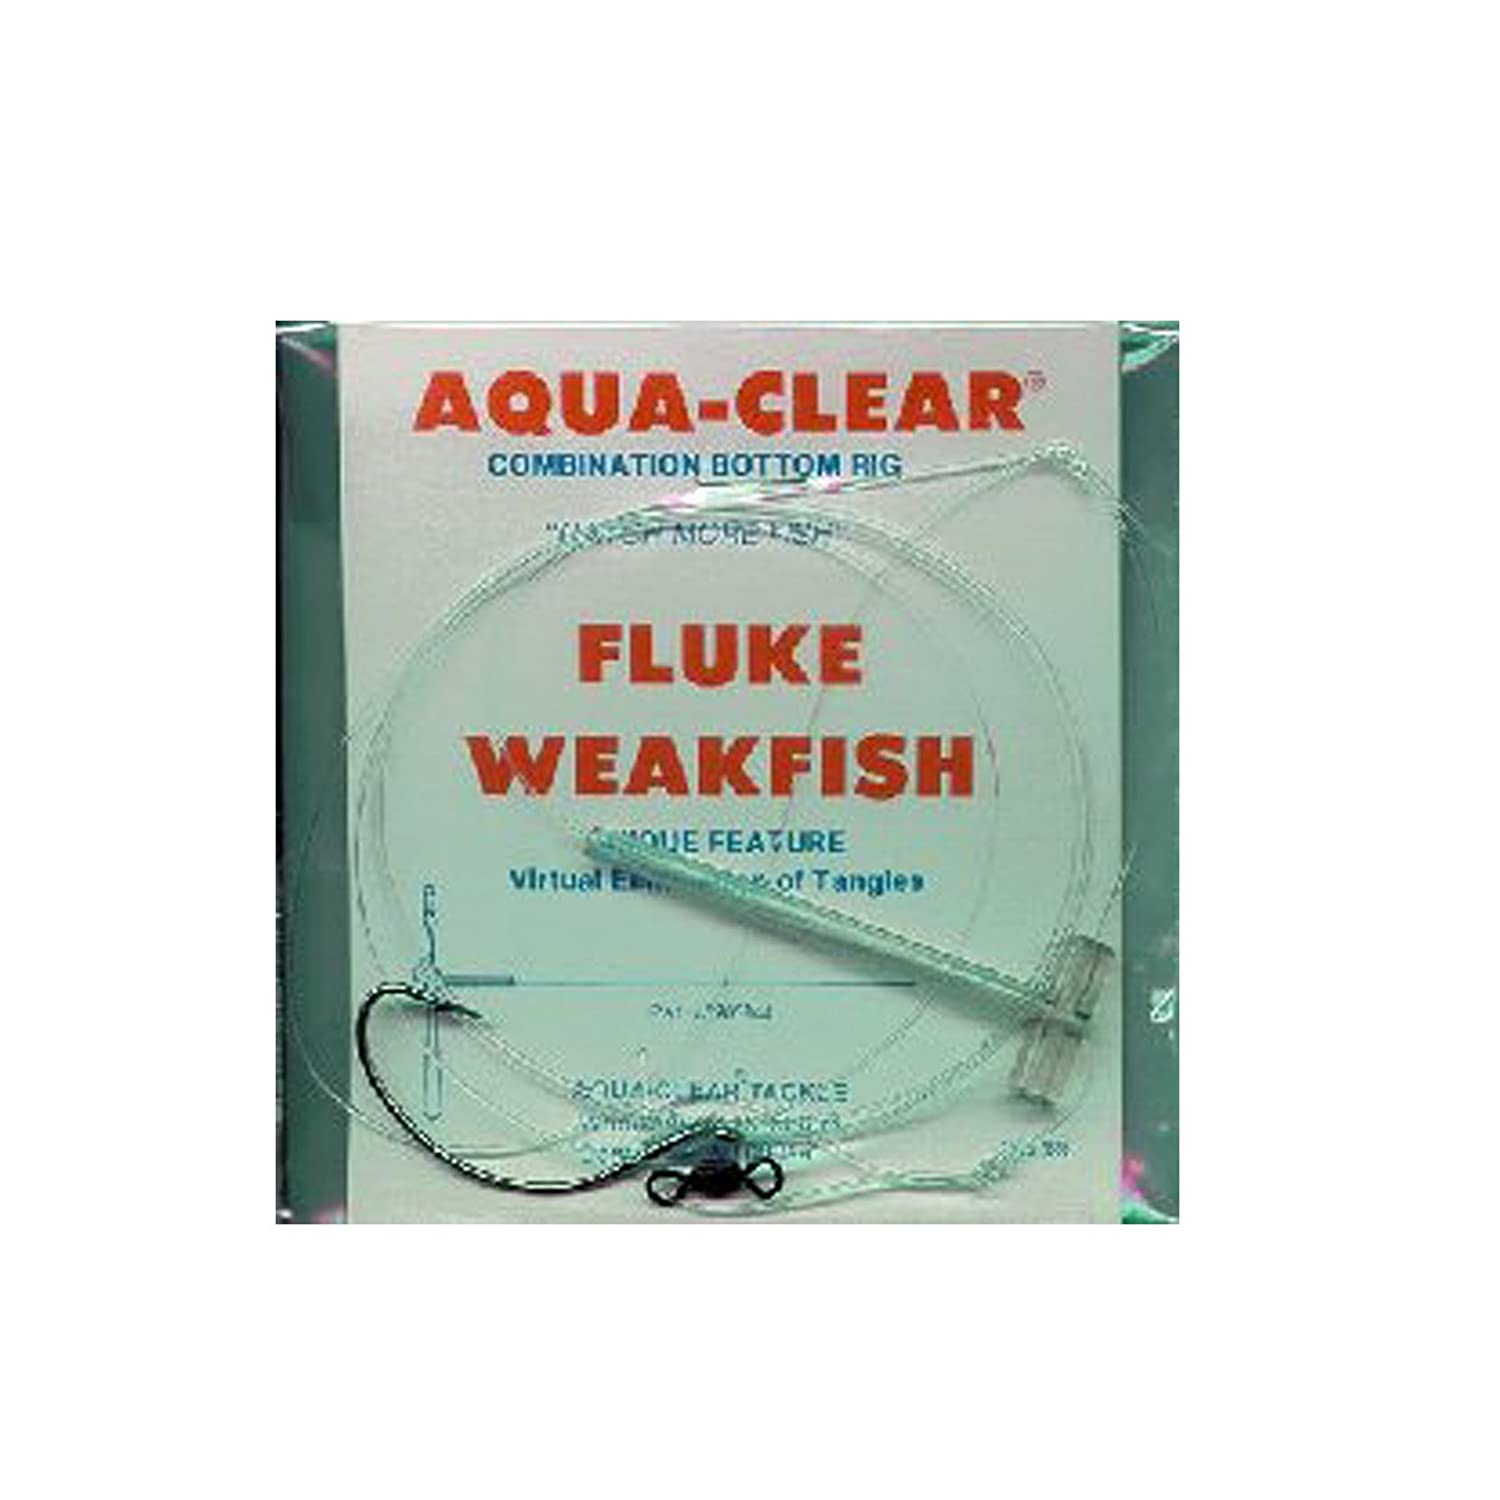 AquaClear Fluke/Weakfish Rigs Single Leader Plain or Pearl/Spinner Stainless Steel Wide Gap Hook rt9199 sop8